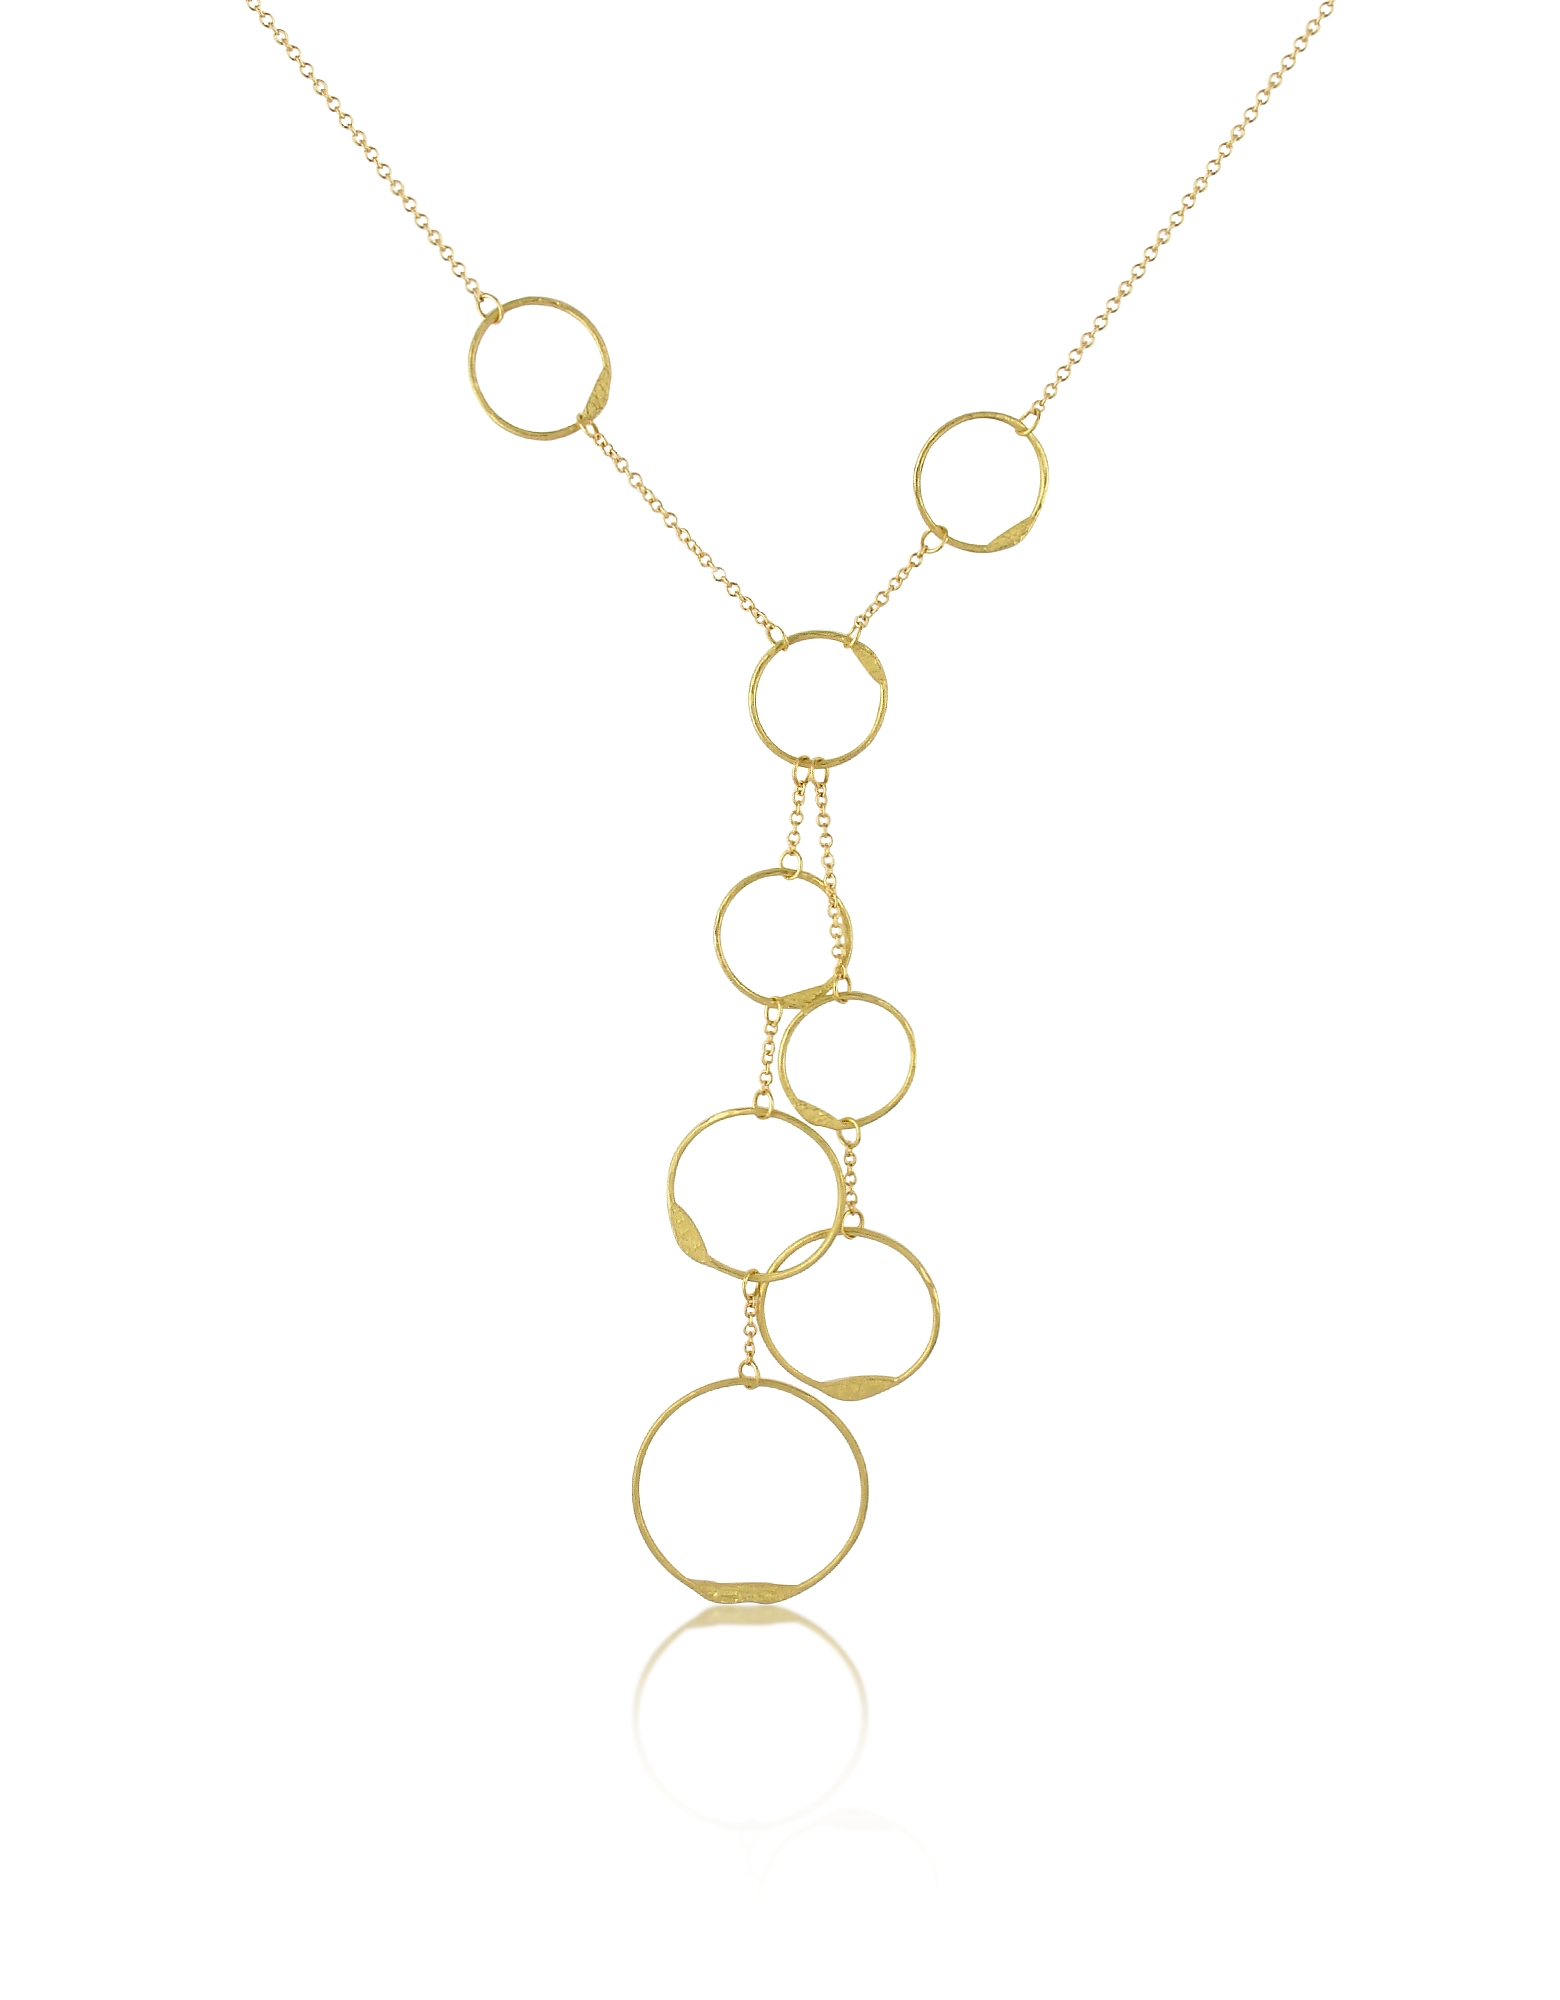 Torrini Necklaces, Milly - 18K Yellow Gold Circles Drop Necklace